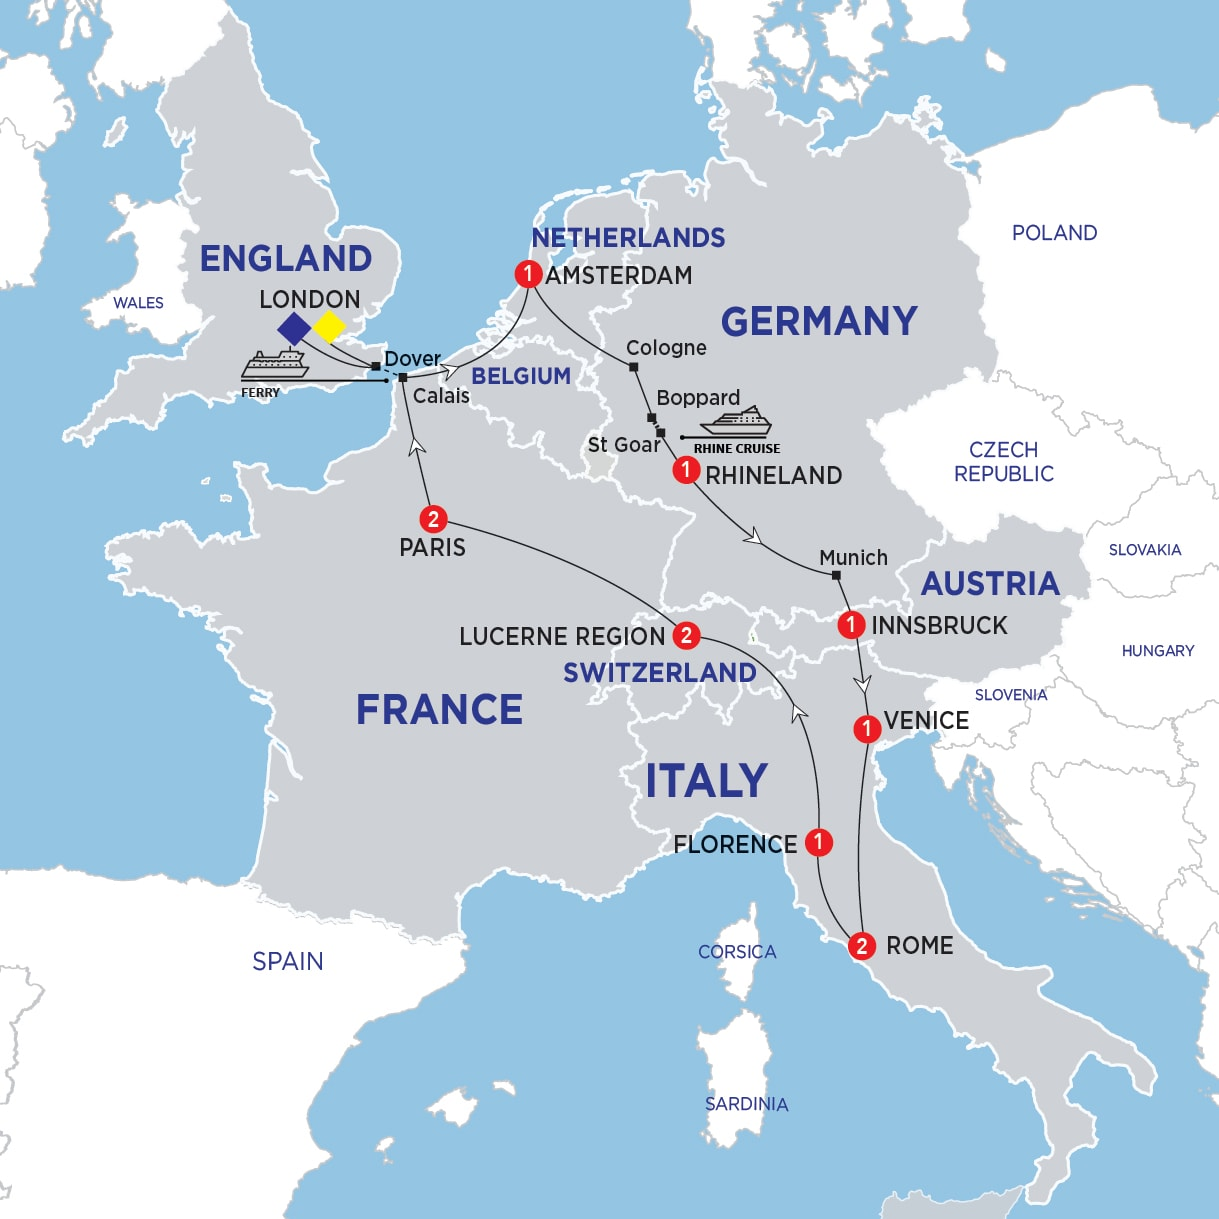 Map Of England And Europe.Europe And Britain 2019 Costsaver Home United Kingdom Deals